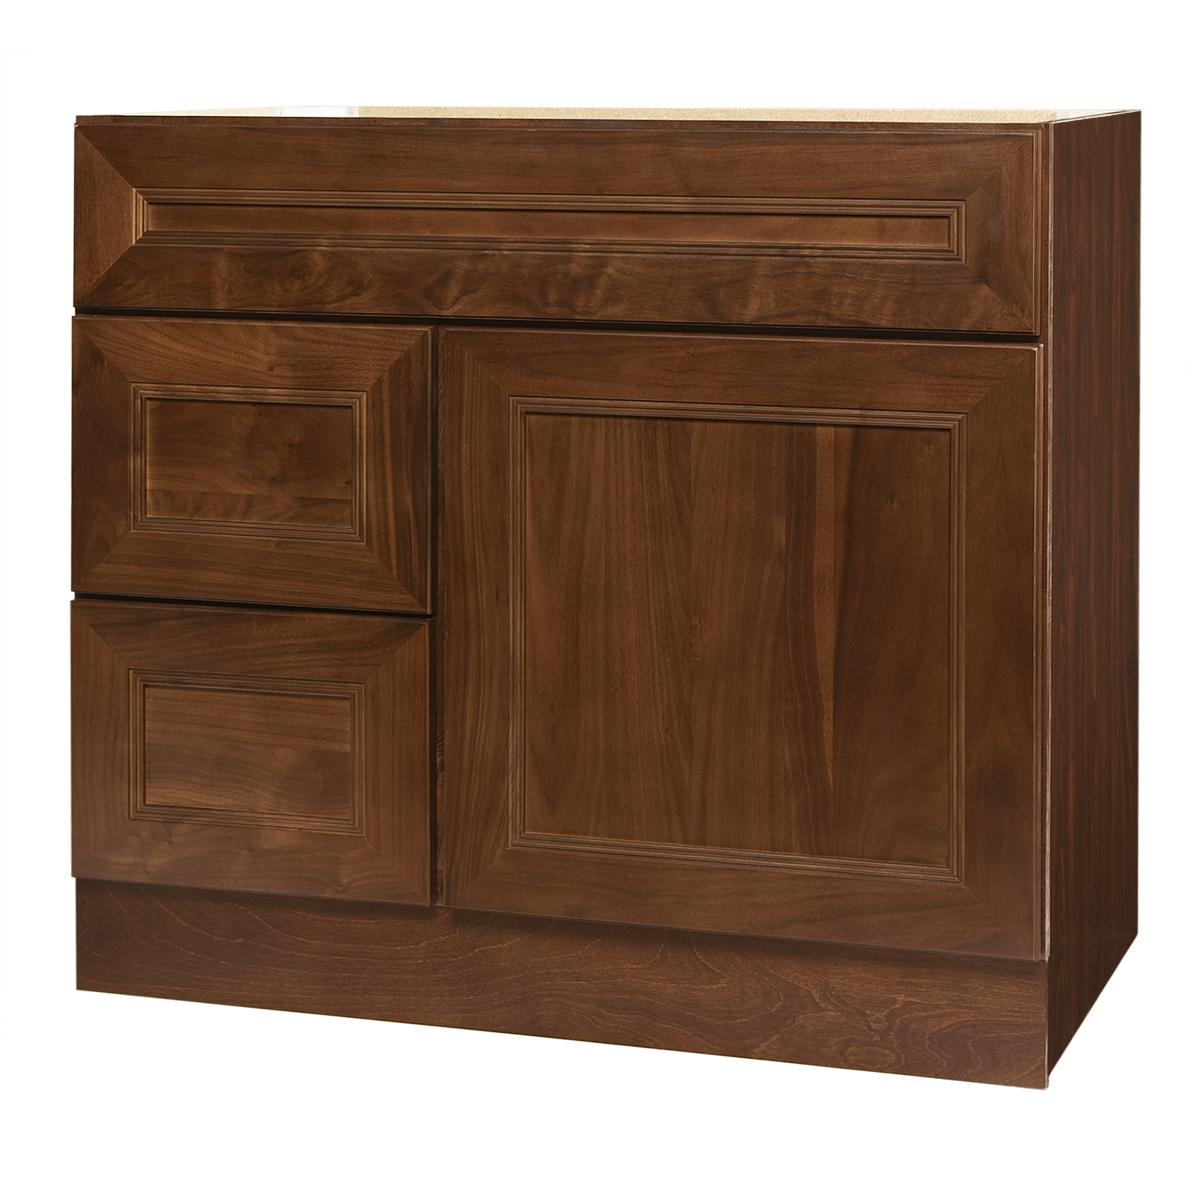 San Remo Series 36x21 inch Left side Drawers Vanity Base Oversto